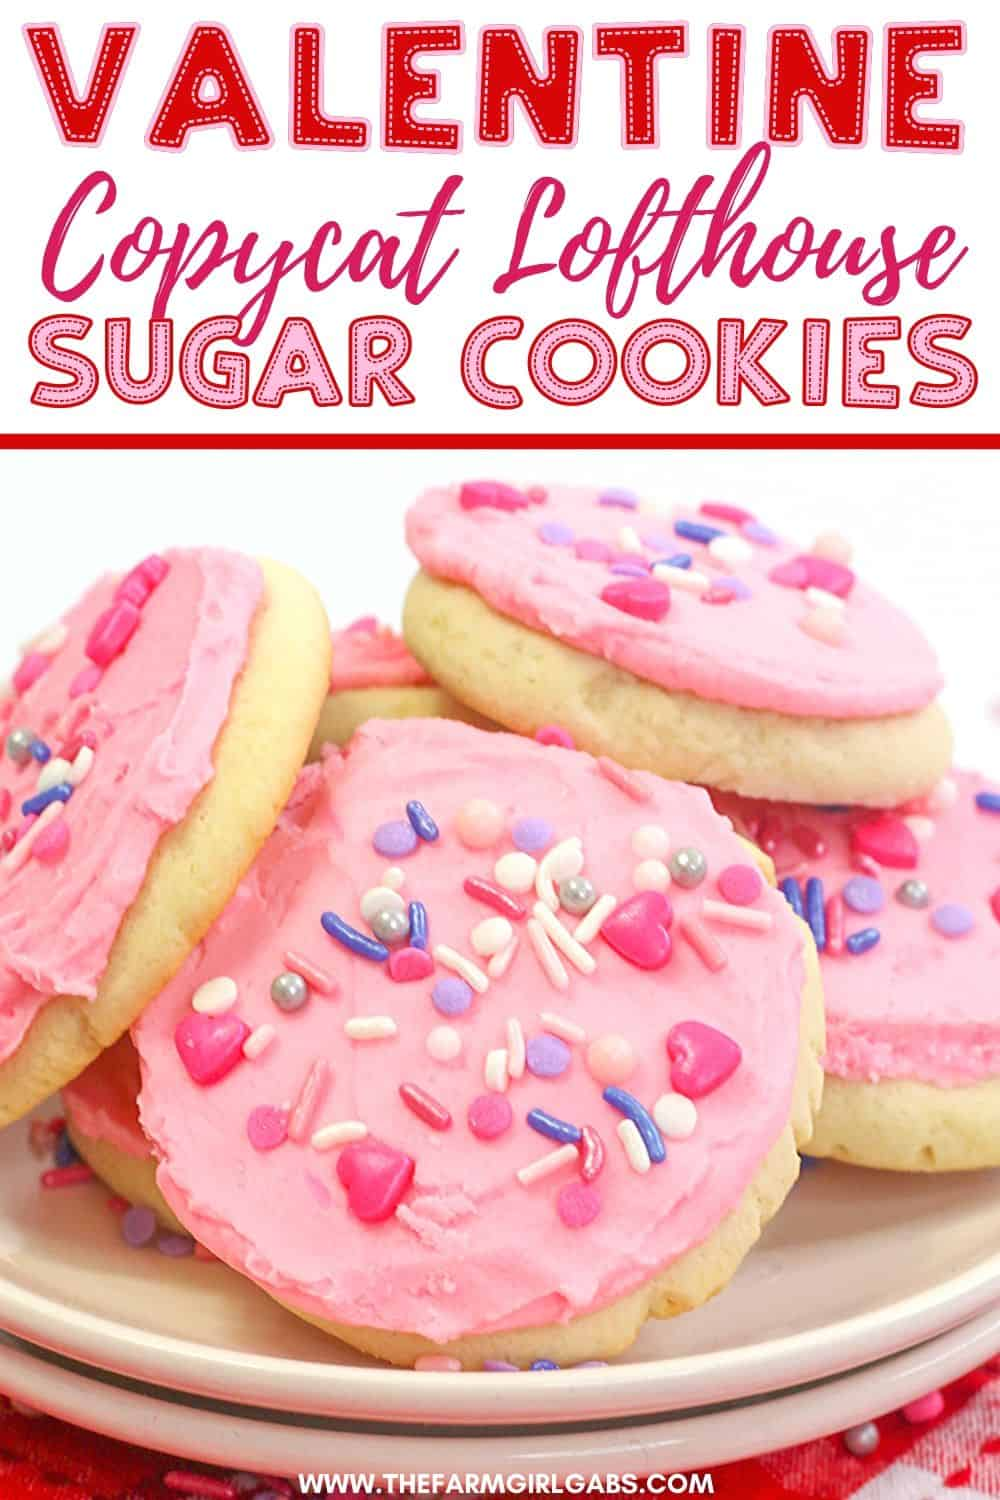 These soft and buttery Valentine Lofthouse Sugar Cookies are the perfect sweet treat. These sour cream cookies are topped with sweet frosting and sprinkles. This is an easy sugar cookie recipe that requires no rolling. You can make them for any season or holiday by just changing the color of the frosting. #sugarcookies #lofthousecookies #valentinesdayrecipe #partyidea